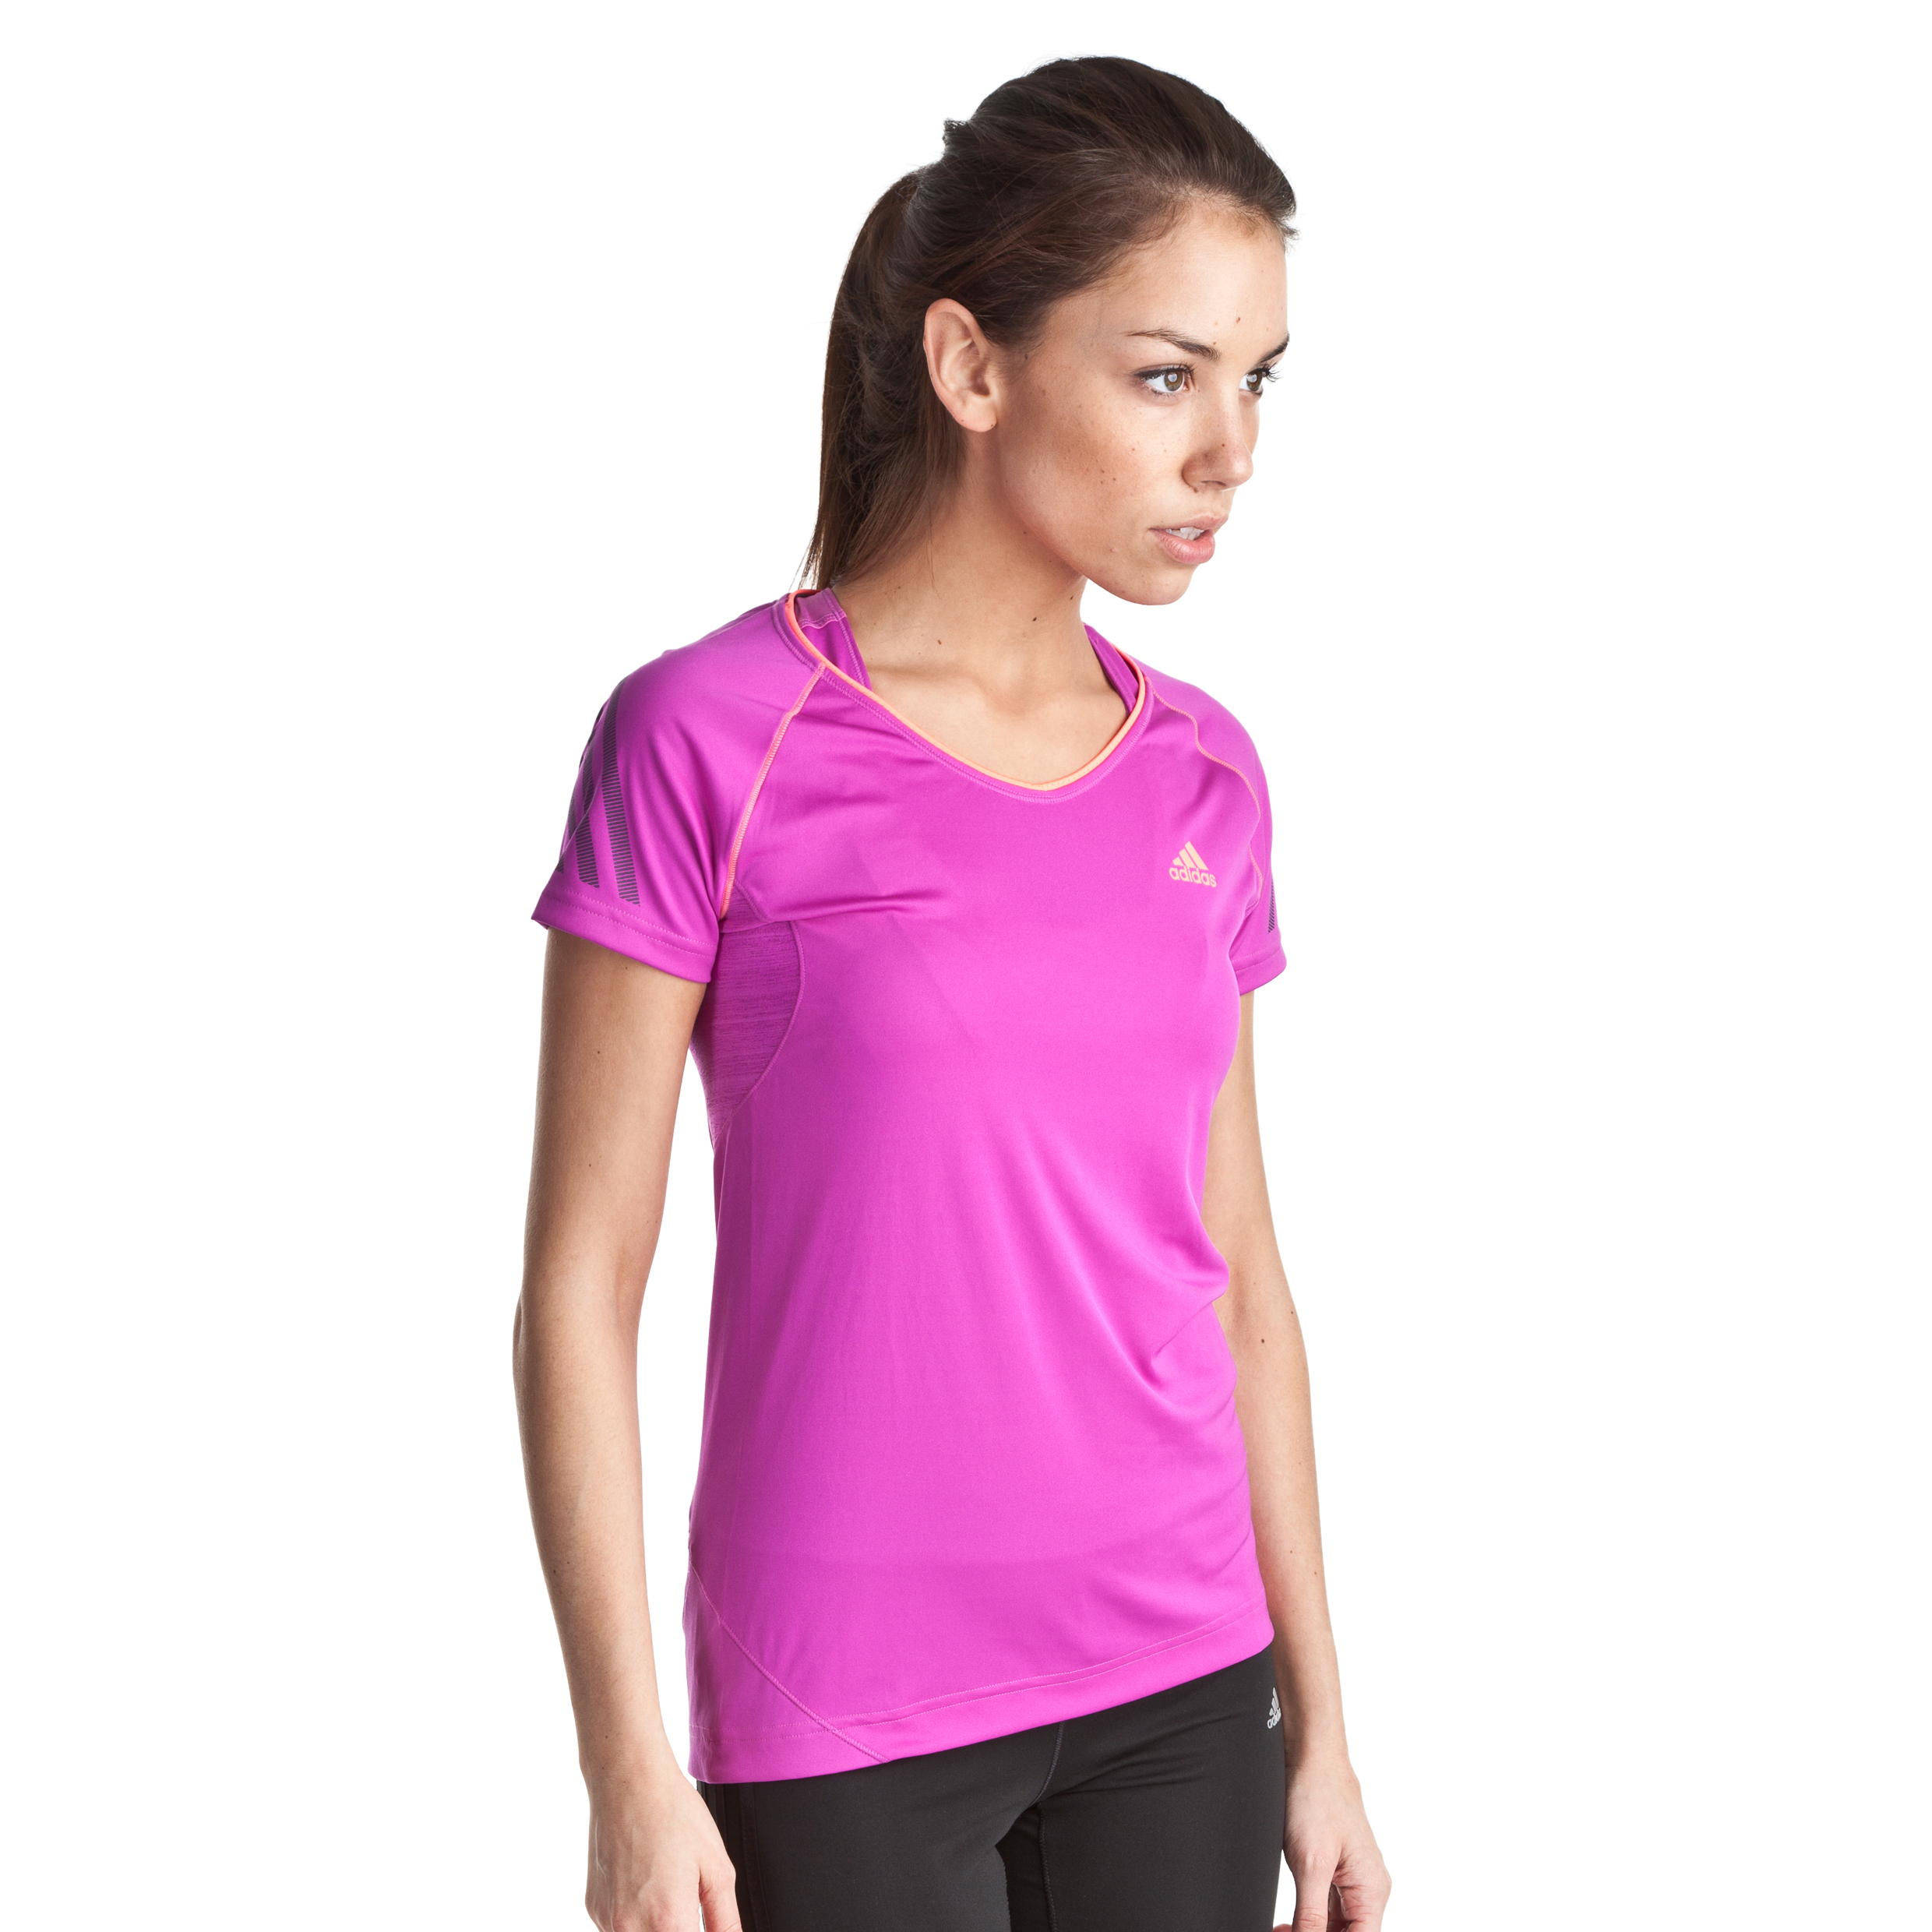 Adidas Supernova Short Sleeve T-Shirt - Vivid Pink S13/Red Zest S13 - Womens